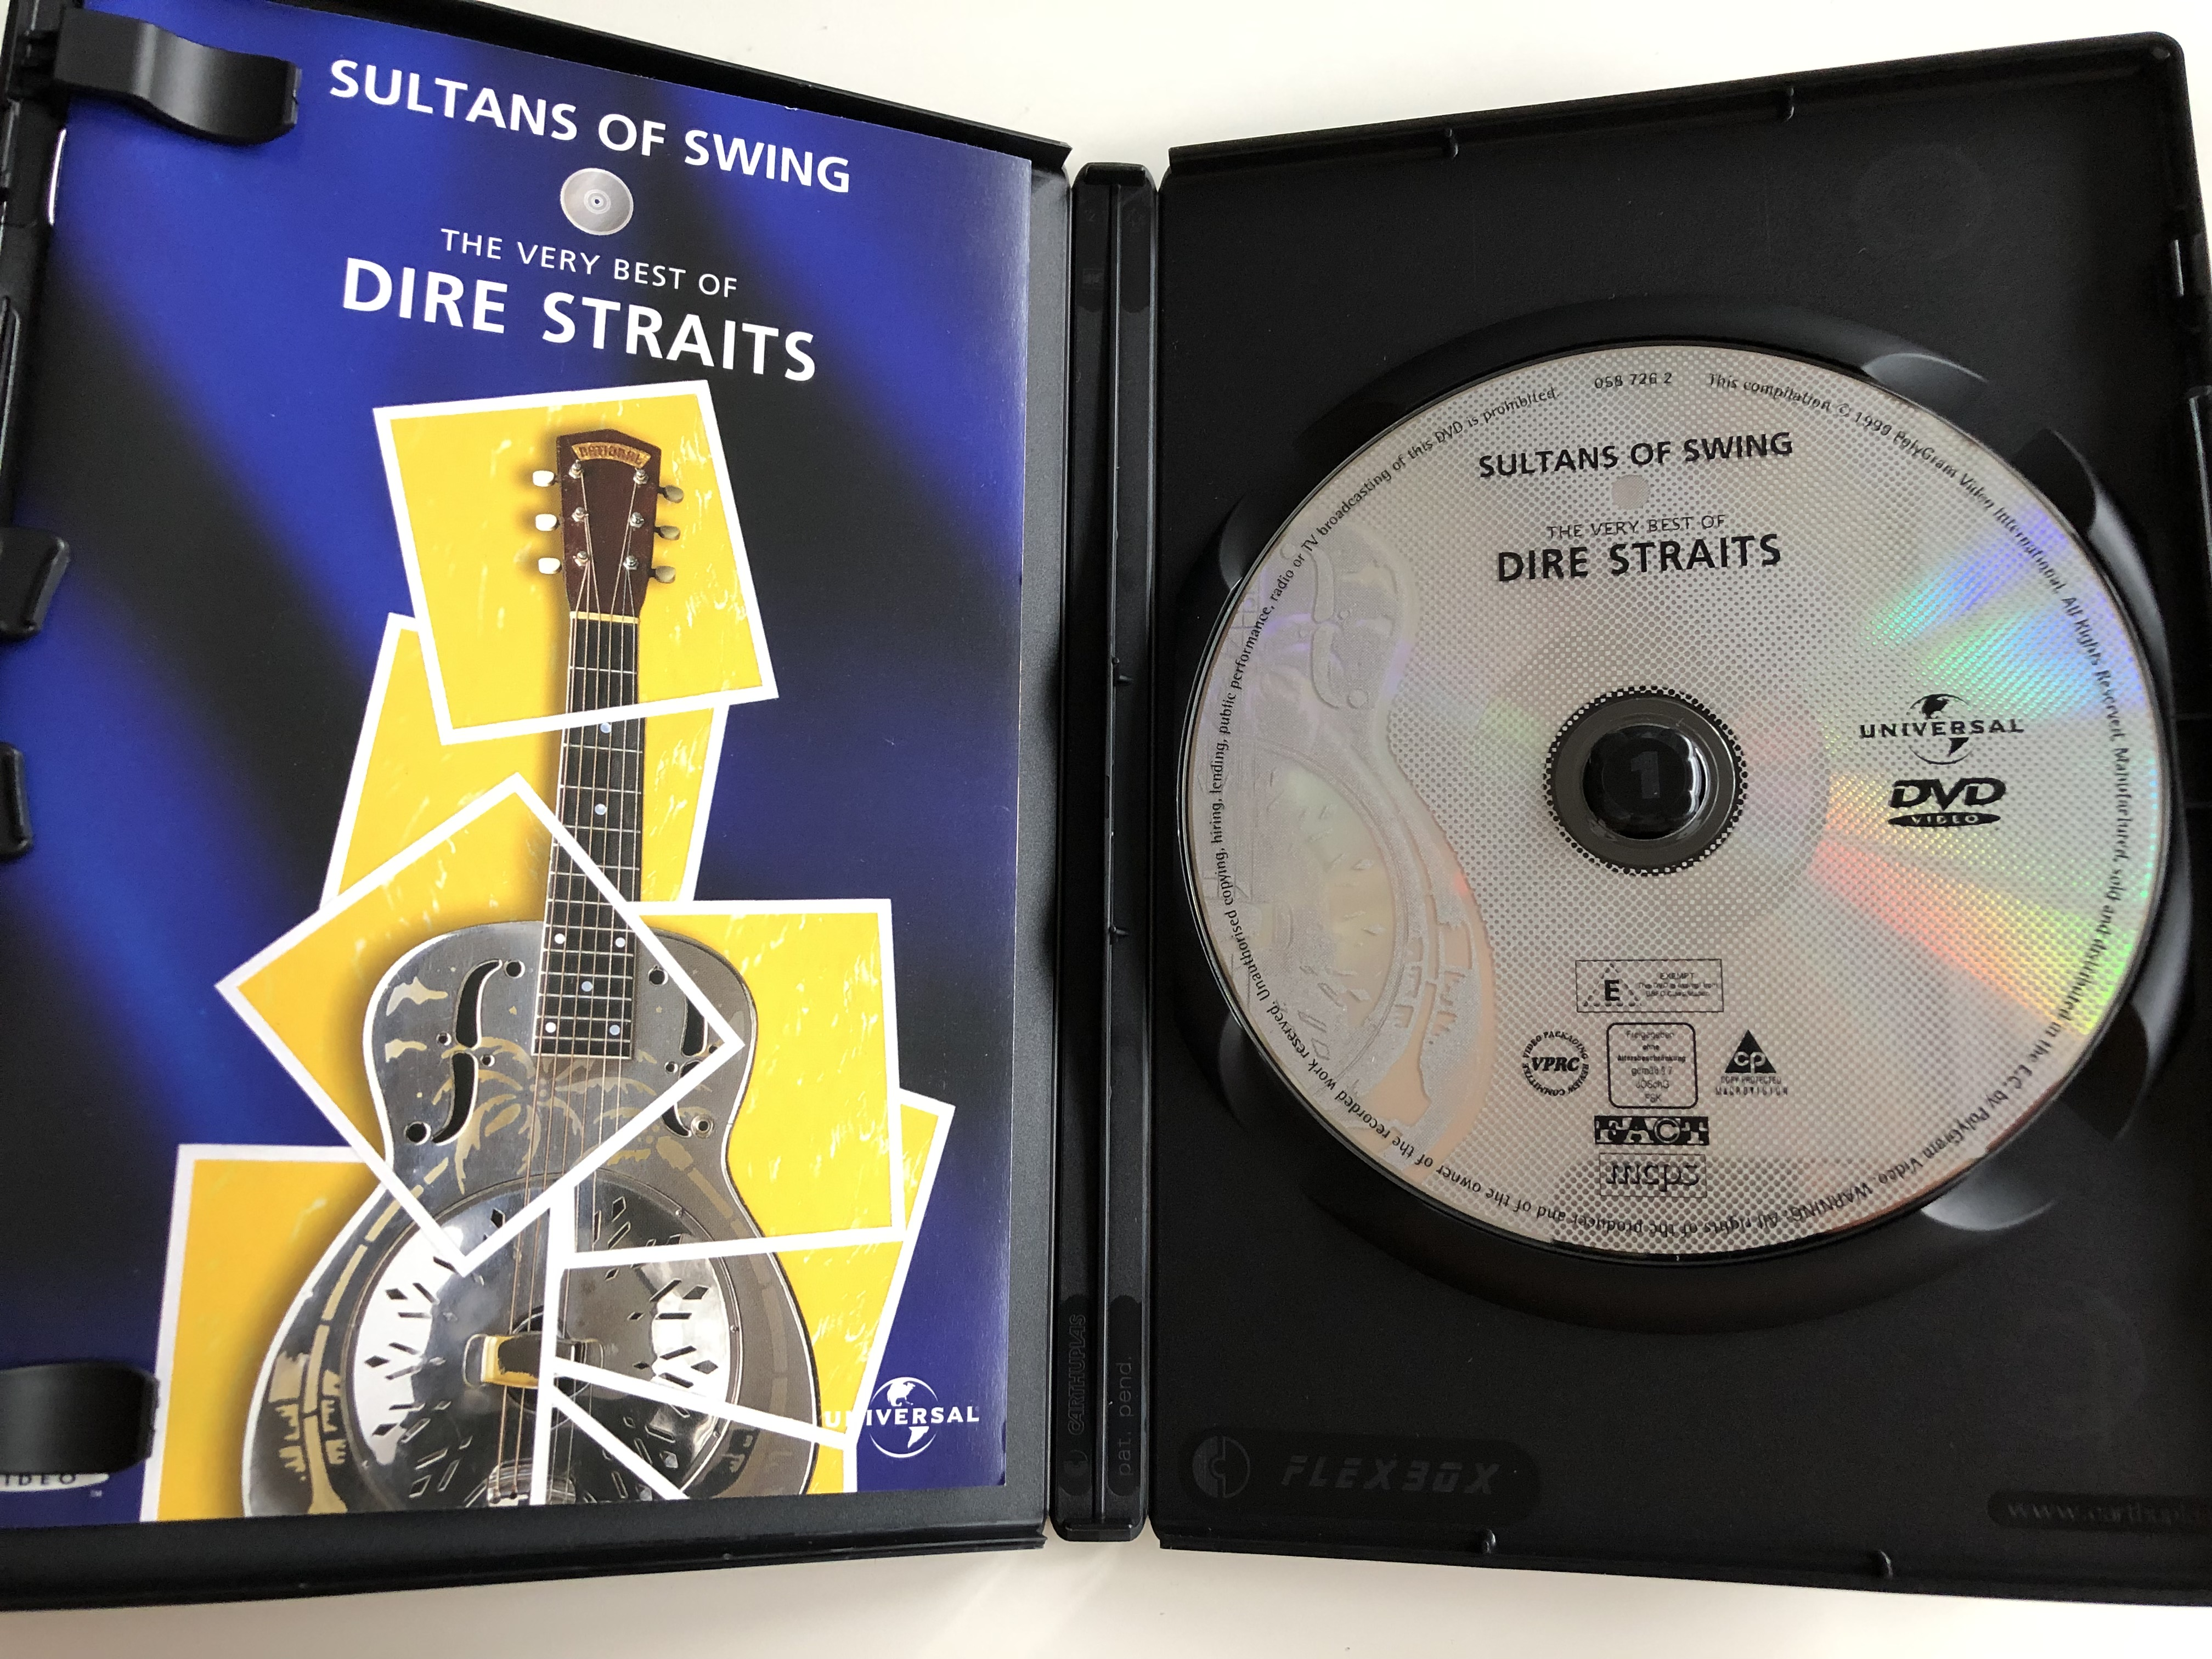 the-very-best-of-dire-straits-dvd-1999-sultans-of-swing-romeo-and-juliet-twisting-by-the-pool-love-over-gold-walk-of-life-audio-interview-with-mark-knopfler-universal-2-.jpg